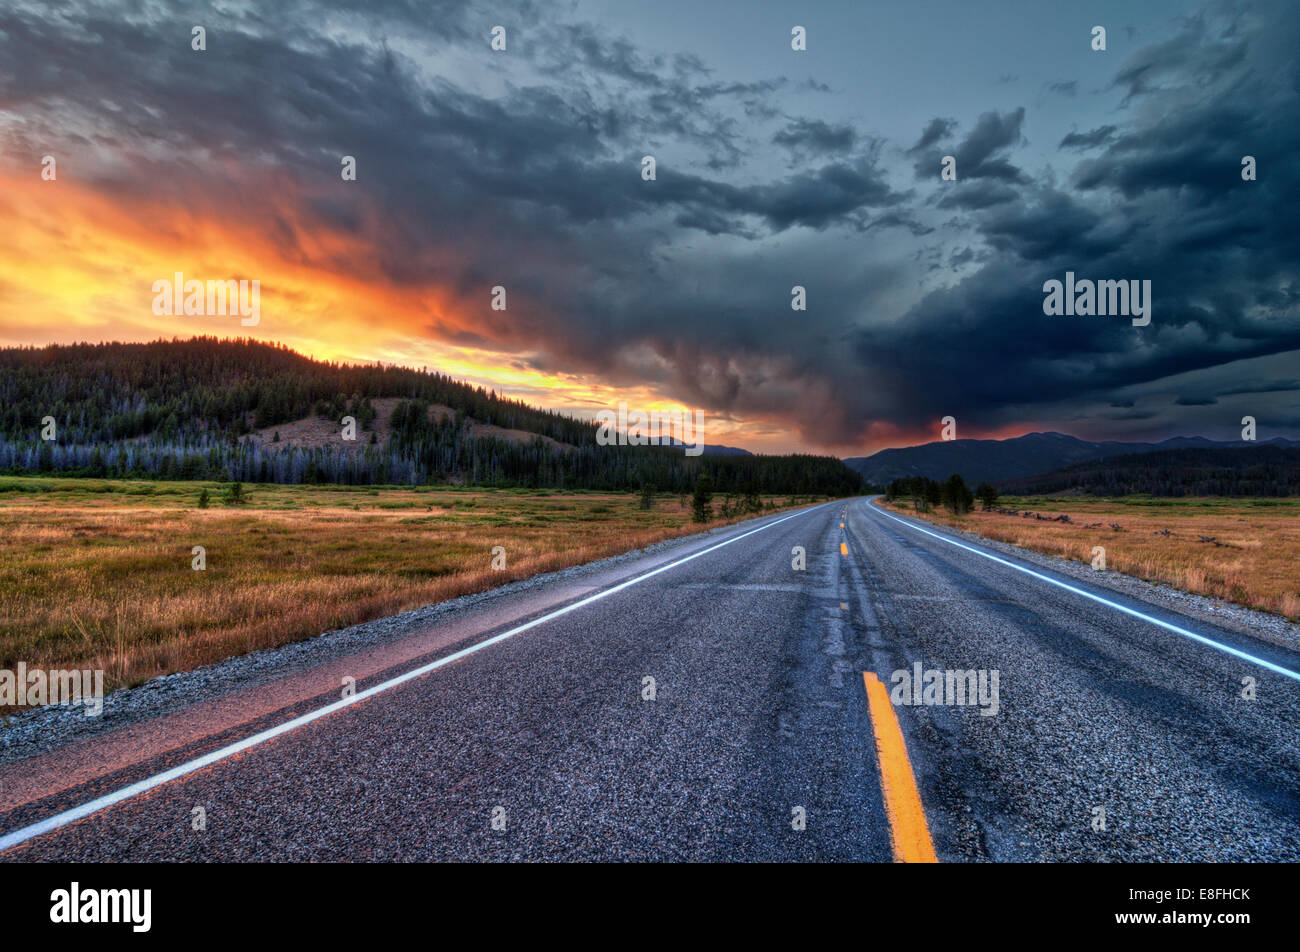 Straight road at sunset - Stock Image